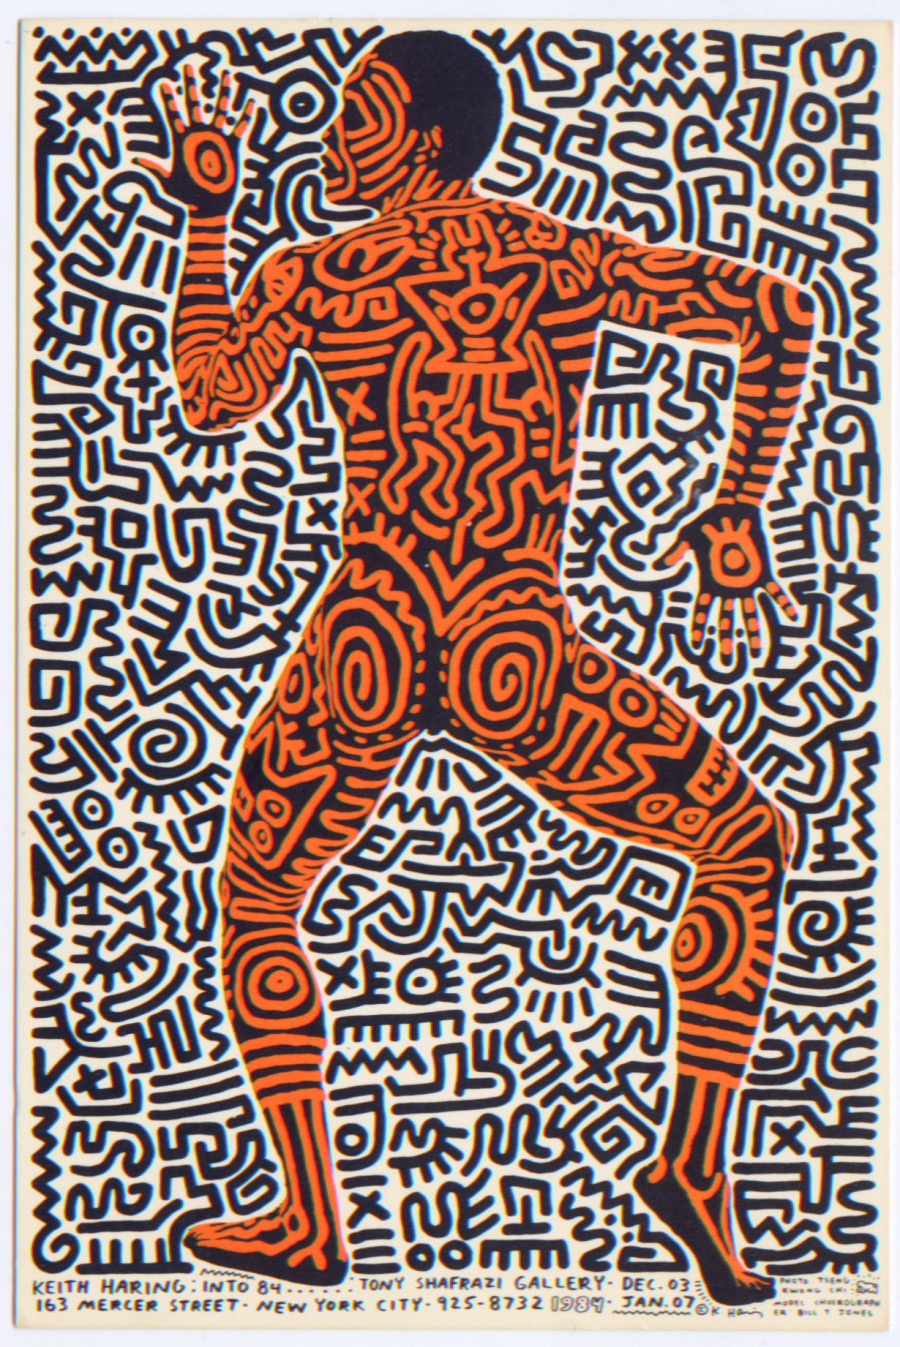 Keith Haring's Album Covers, T-Shirts And More Go On View ...